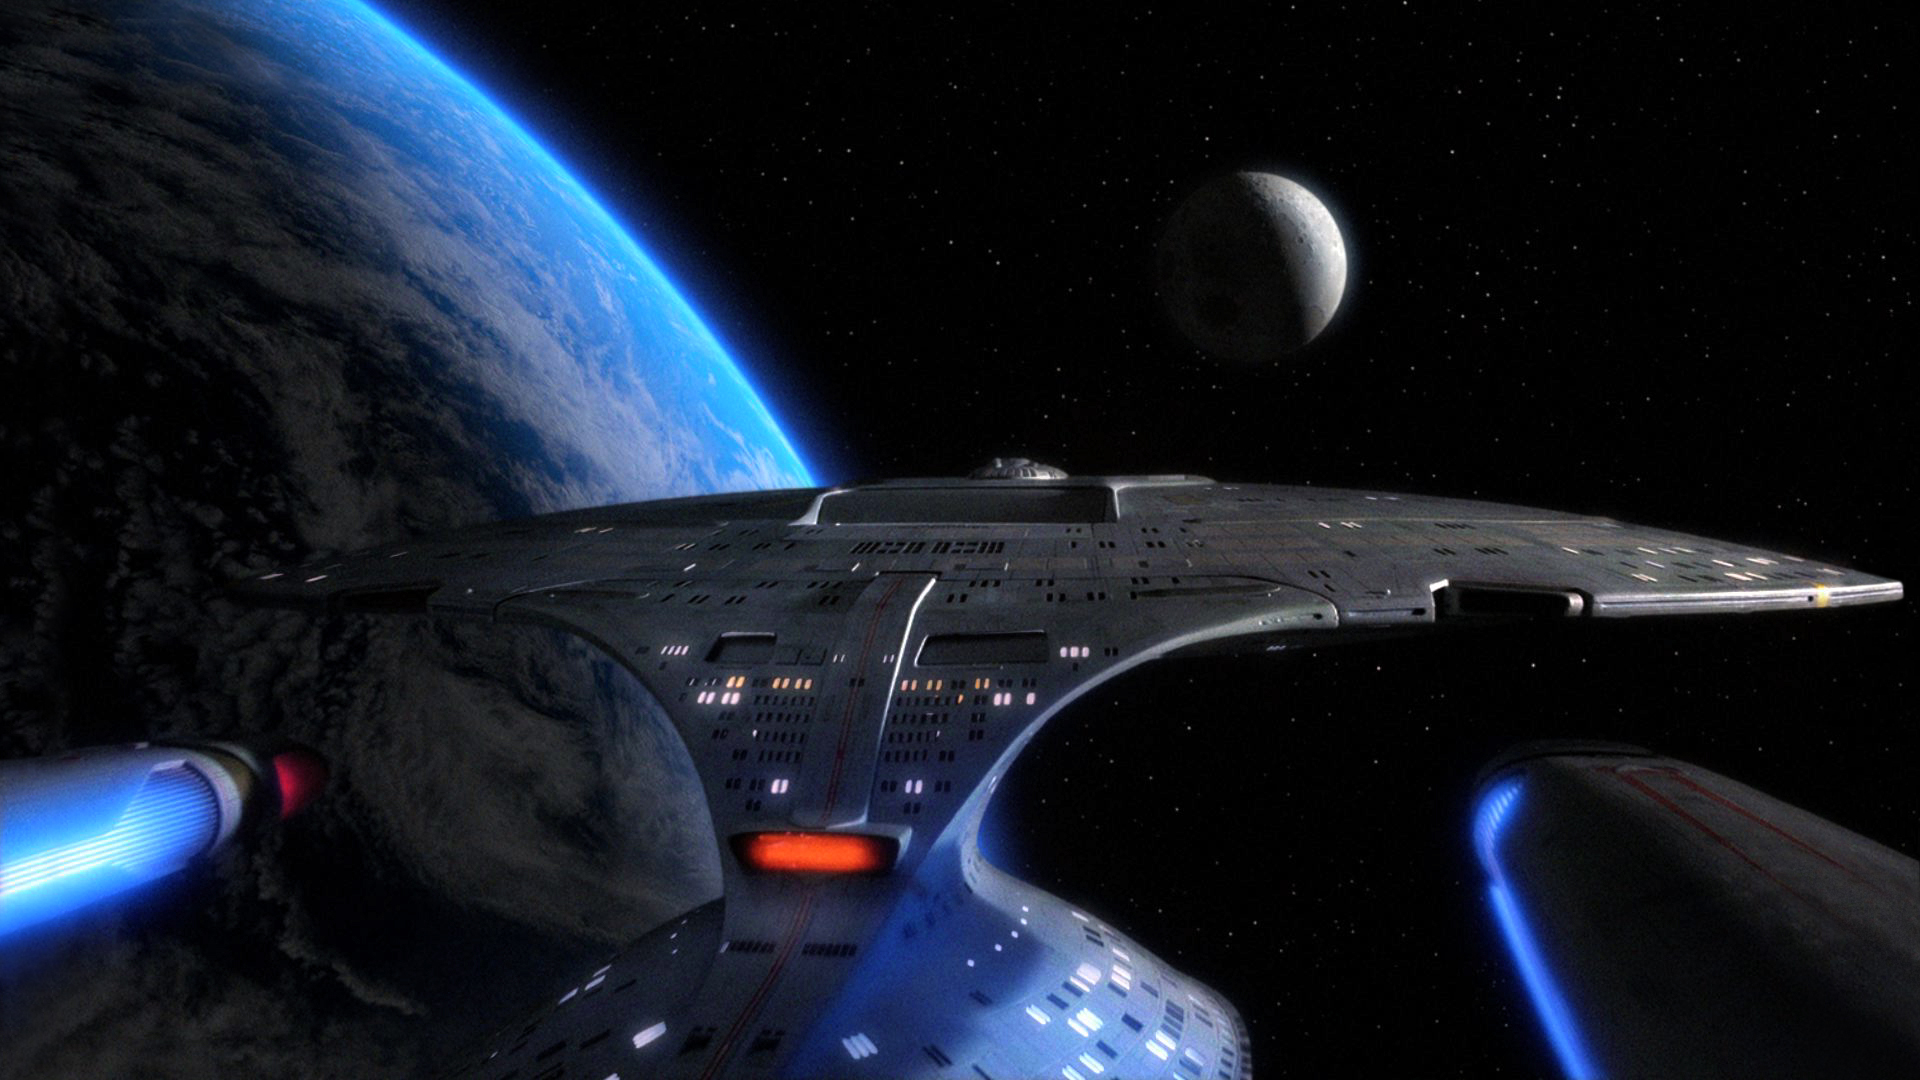 Star Trek The Next Generation Hd Wallpaper Background Image